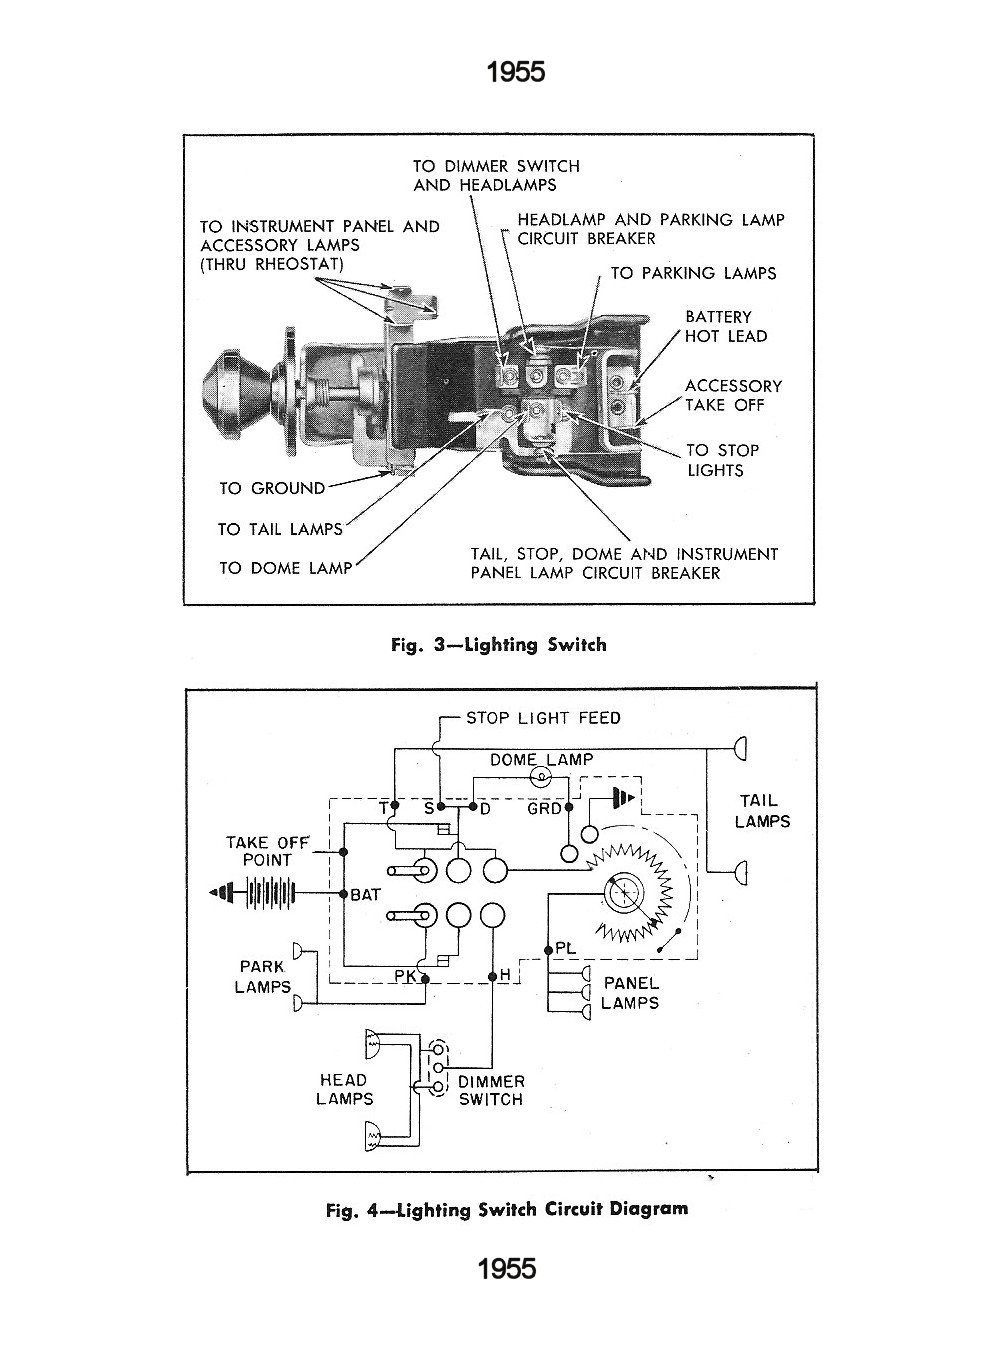 1951 Chevy Wiring Diagram Libraries Jeep Dome Light Fuse Box For 56 Simple Schema56 Pickup Diagrams Scematic